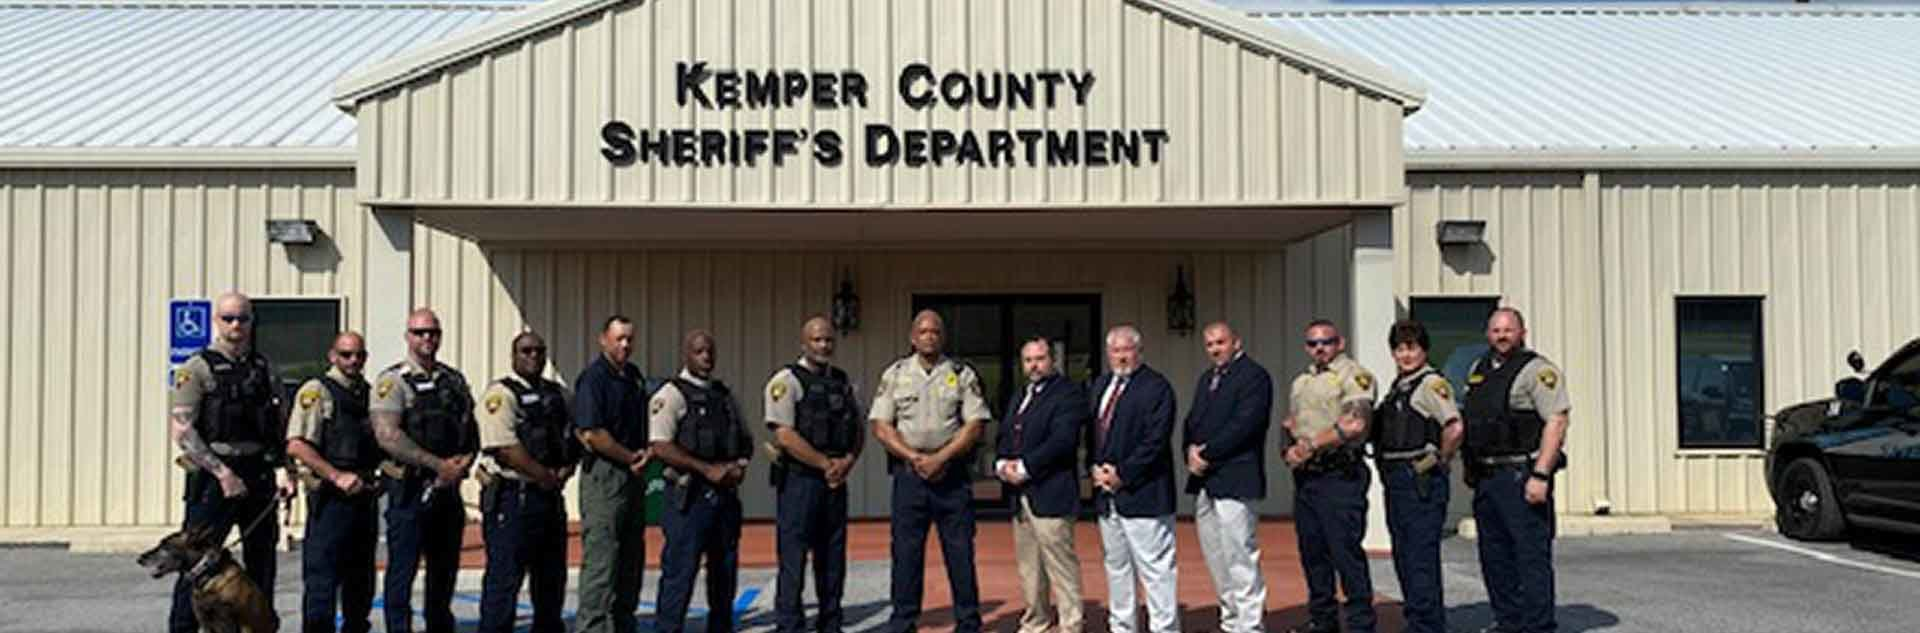 Kemper County Sheriff's Office